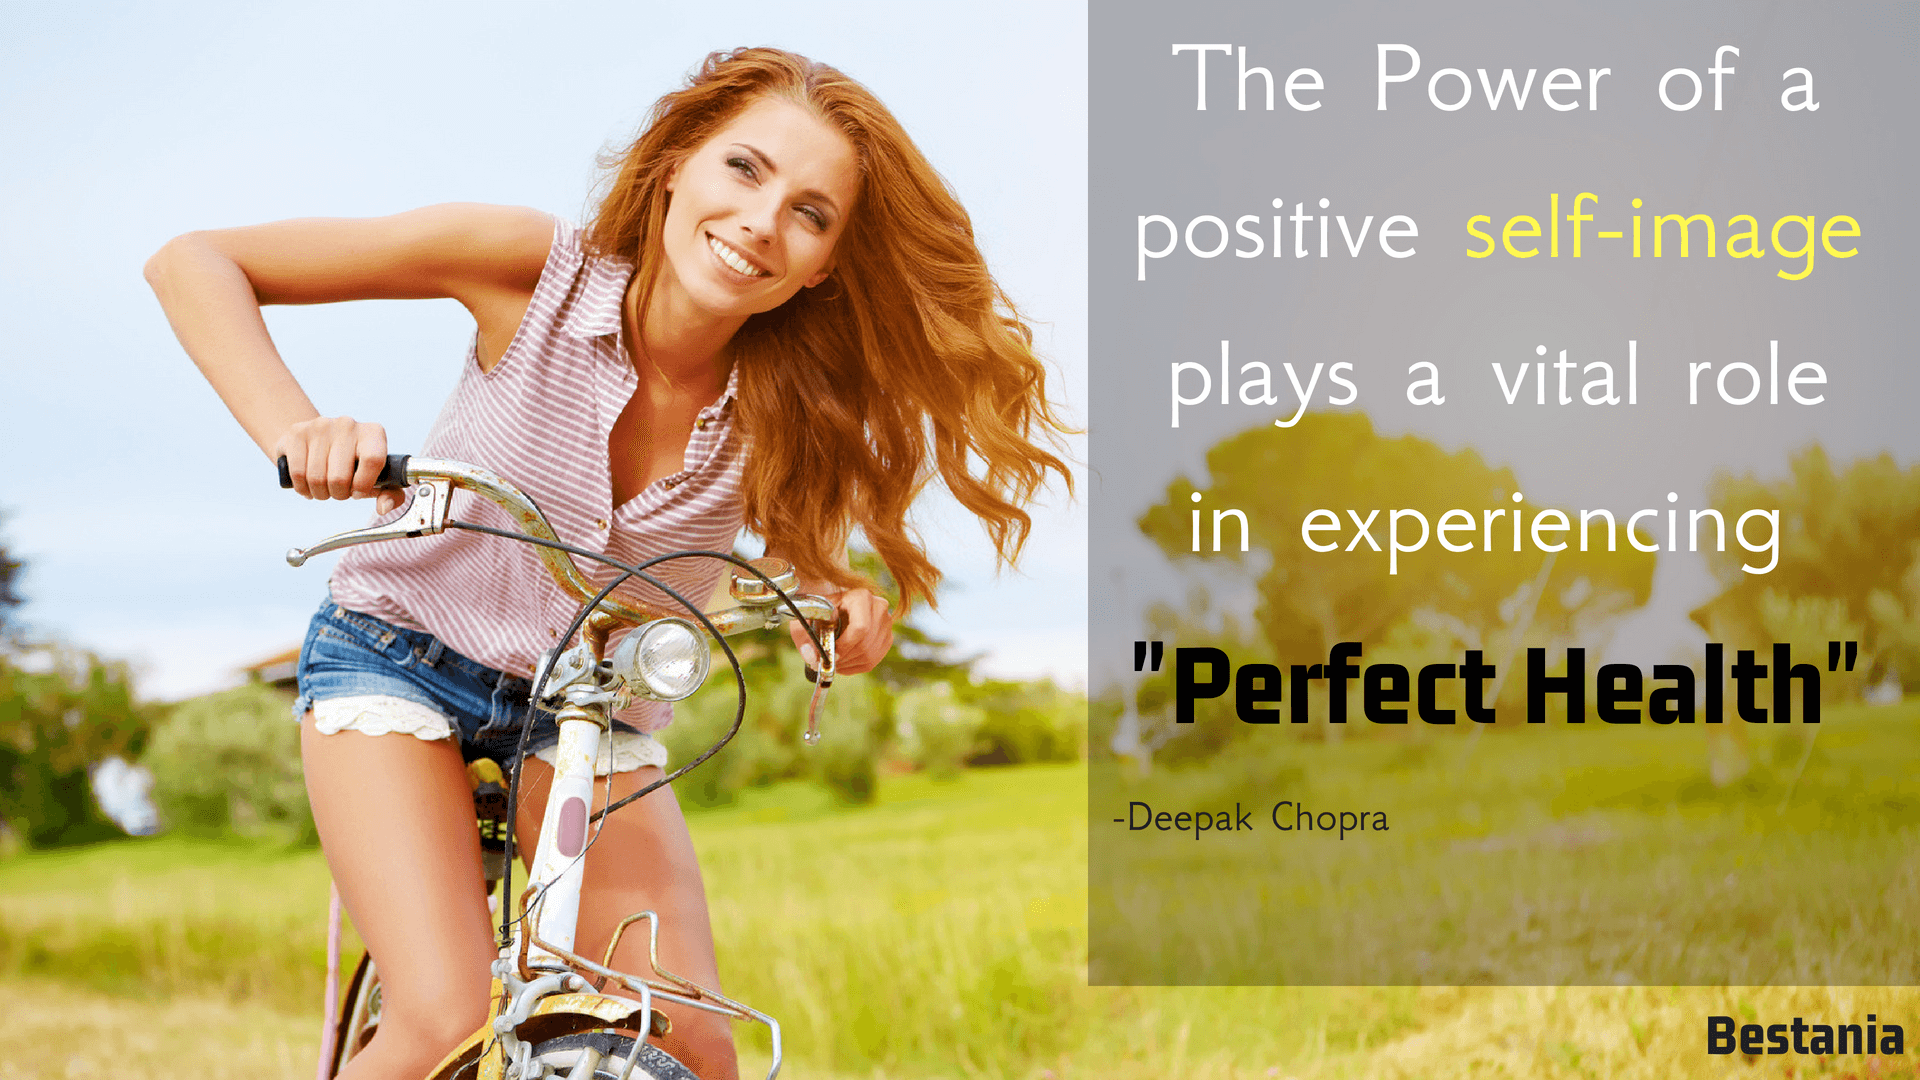 THE POWER OF A POSITIVE SELF IMAGE PLAYS A VITAL ROLE IN PERFECT HEALTH.– DEEPAK CHOPRA